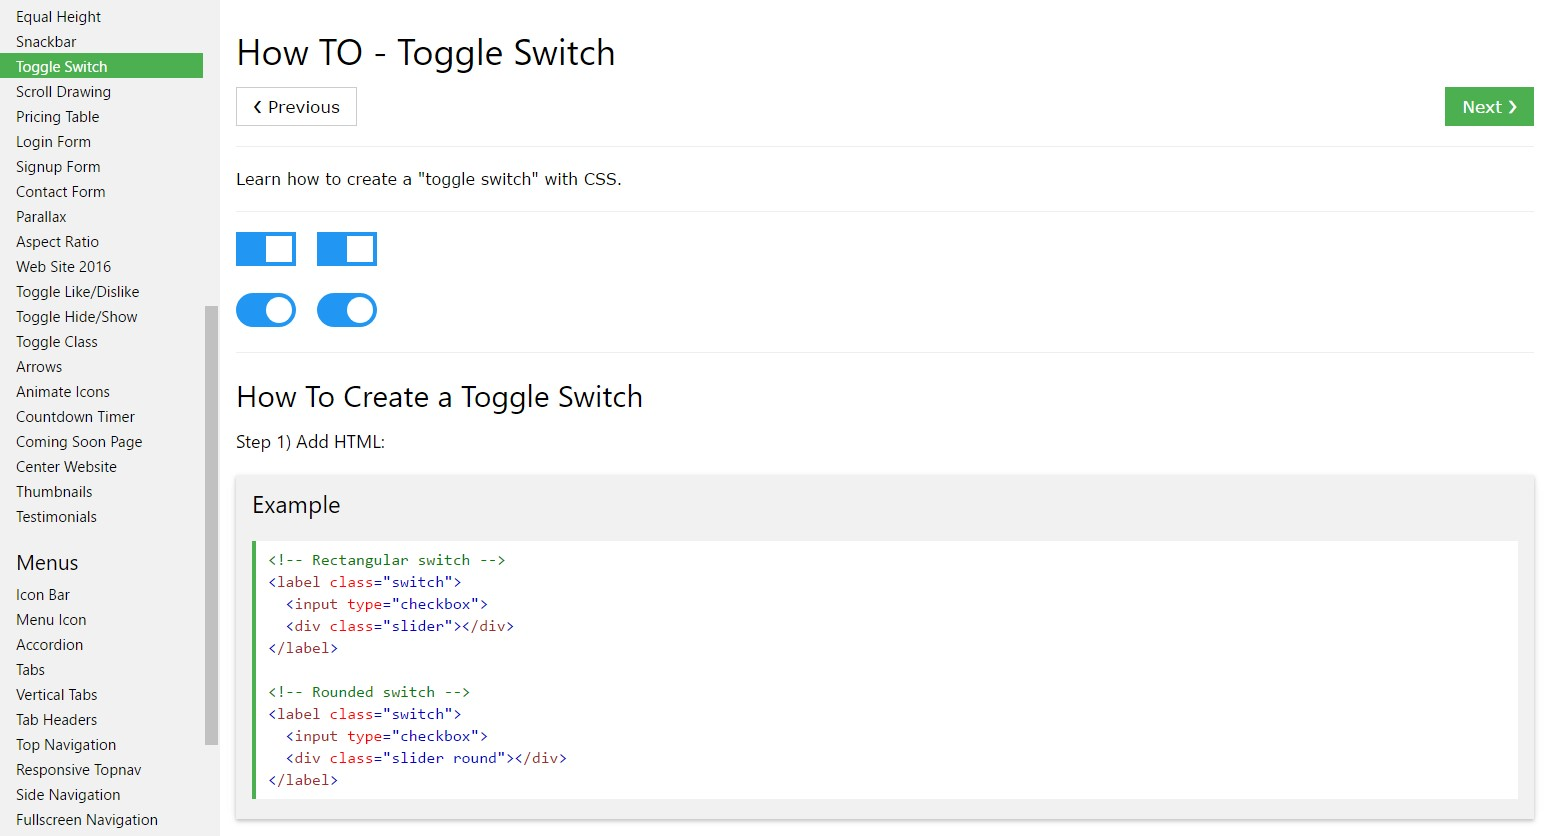 The best way to create Toggle Switch